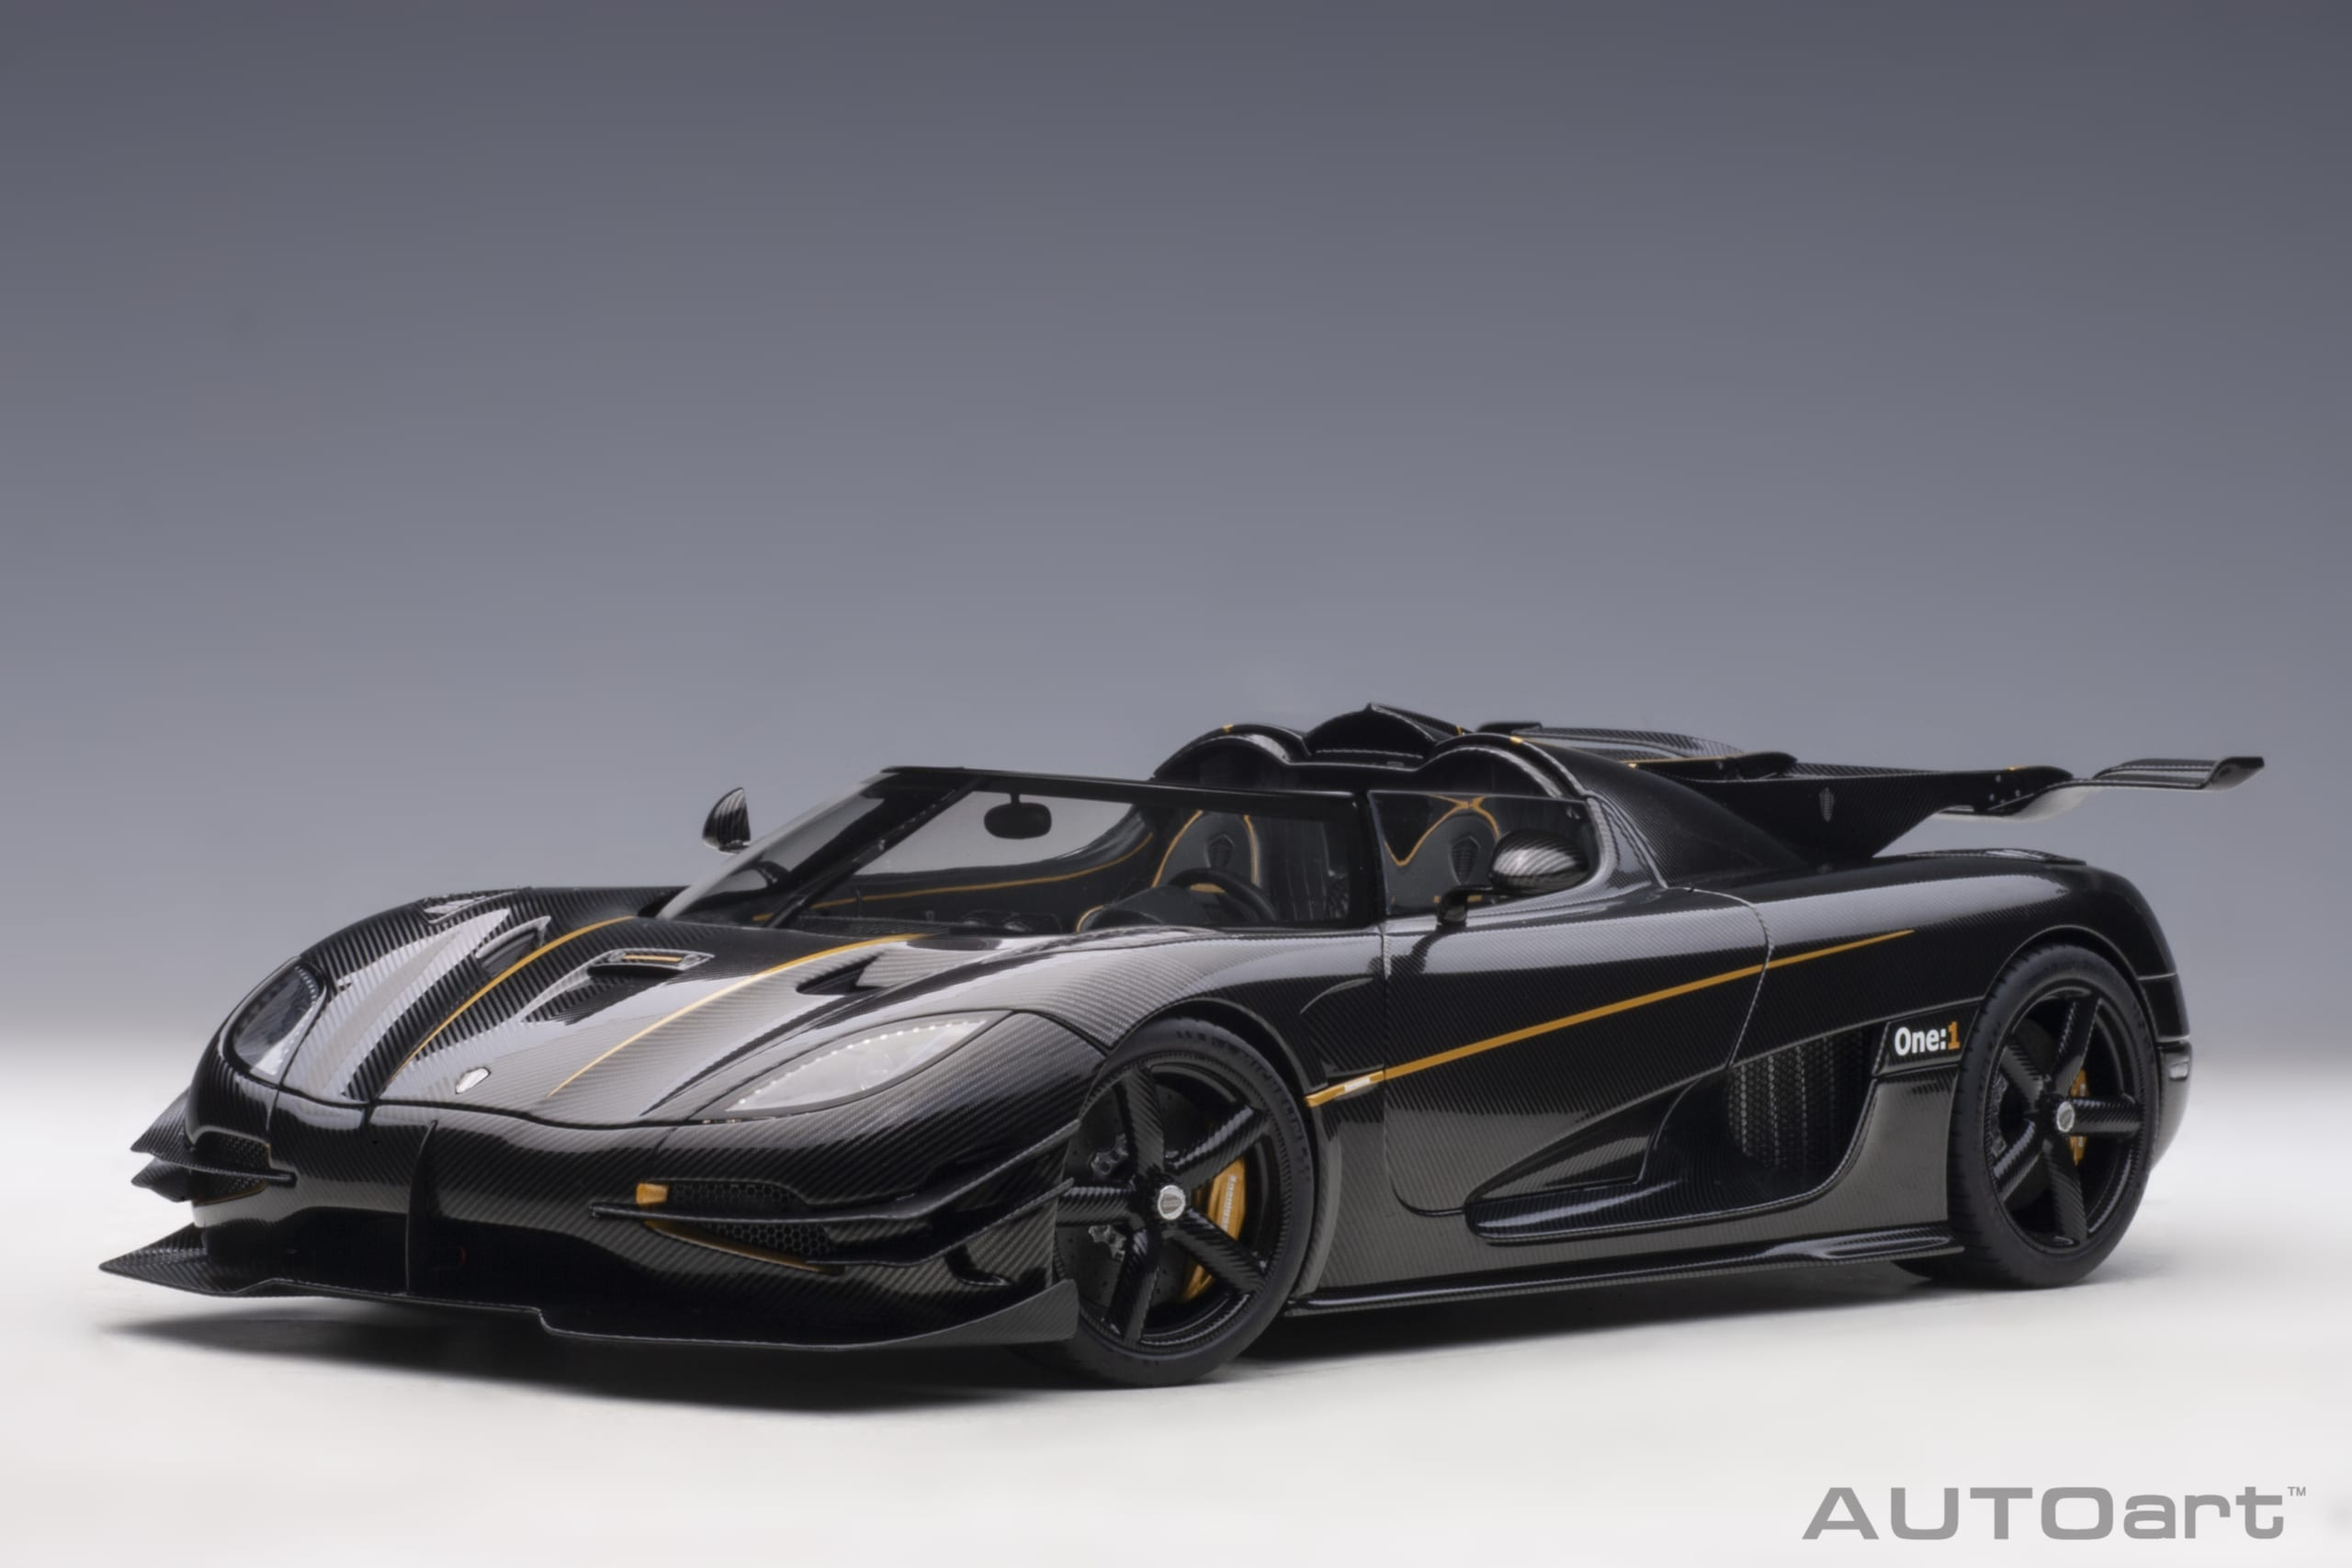 1:18 Koenigsegg One:1 (Carbon with Gold Accents) 2014